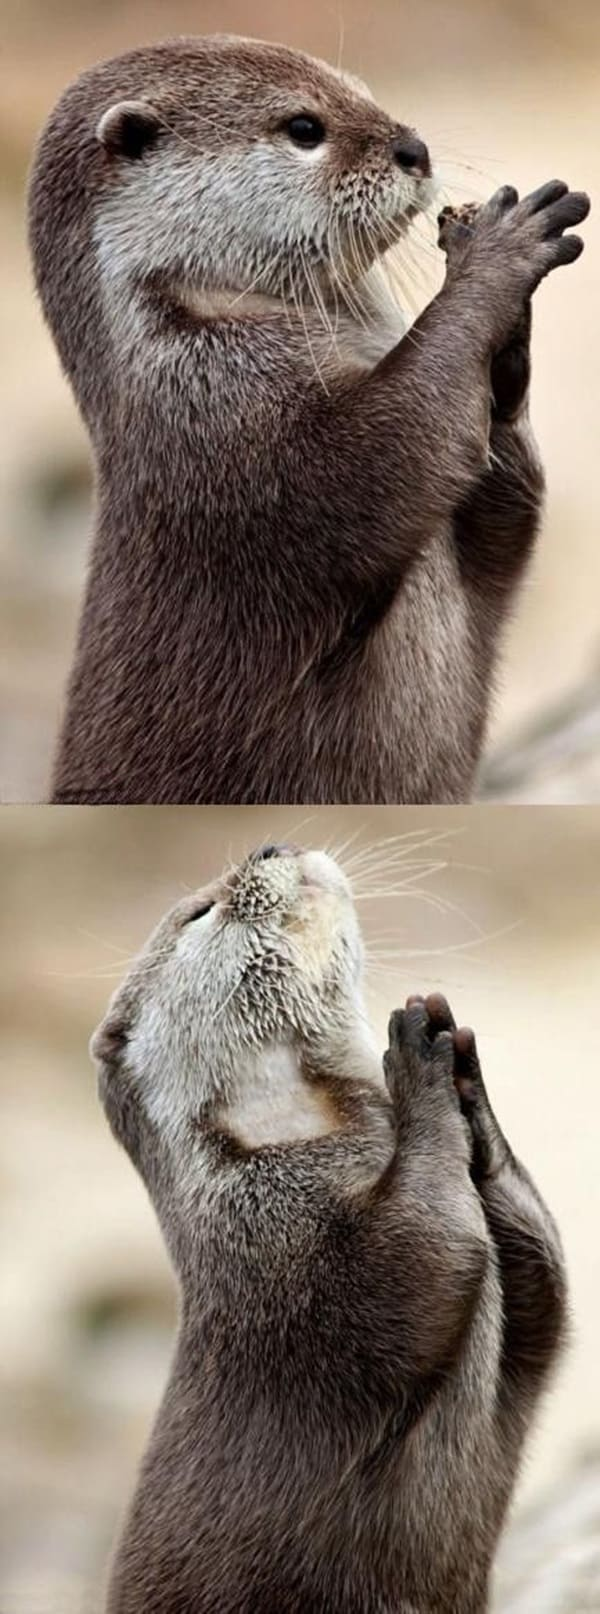 40 Pictures of Funny Cool Animals 19